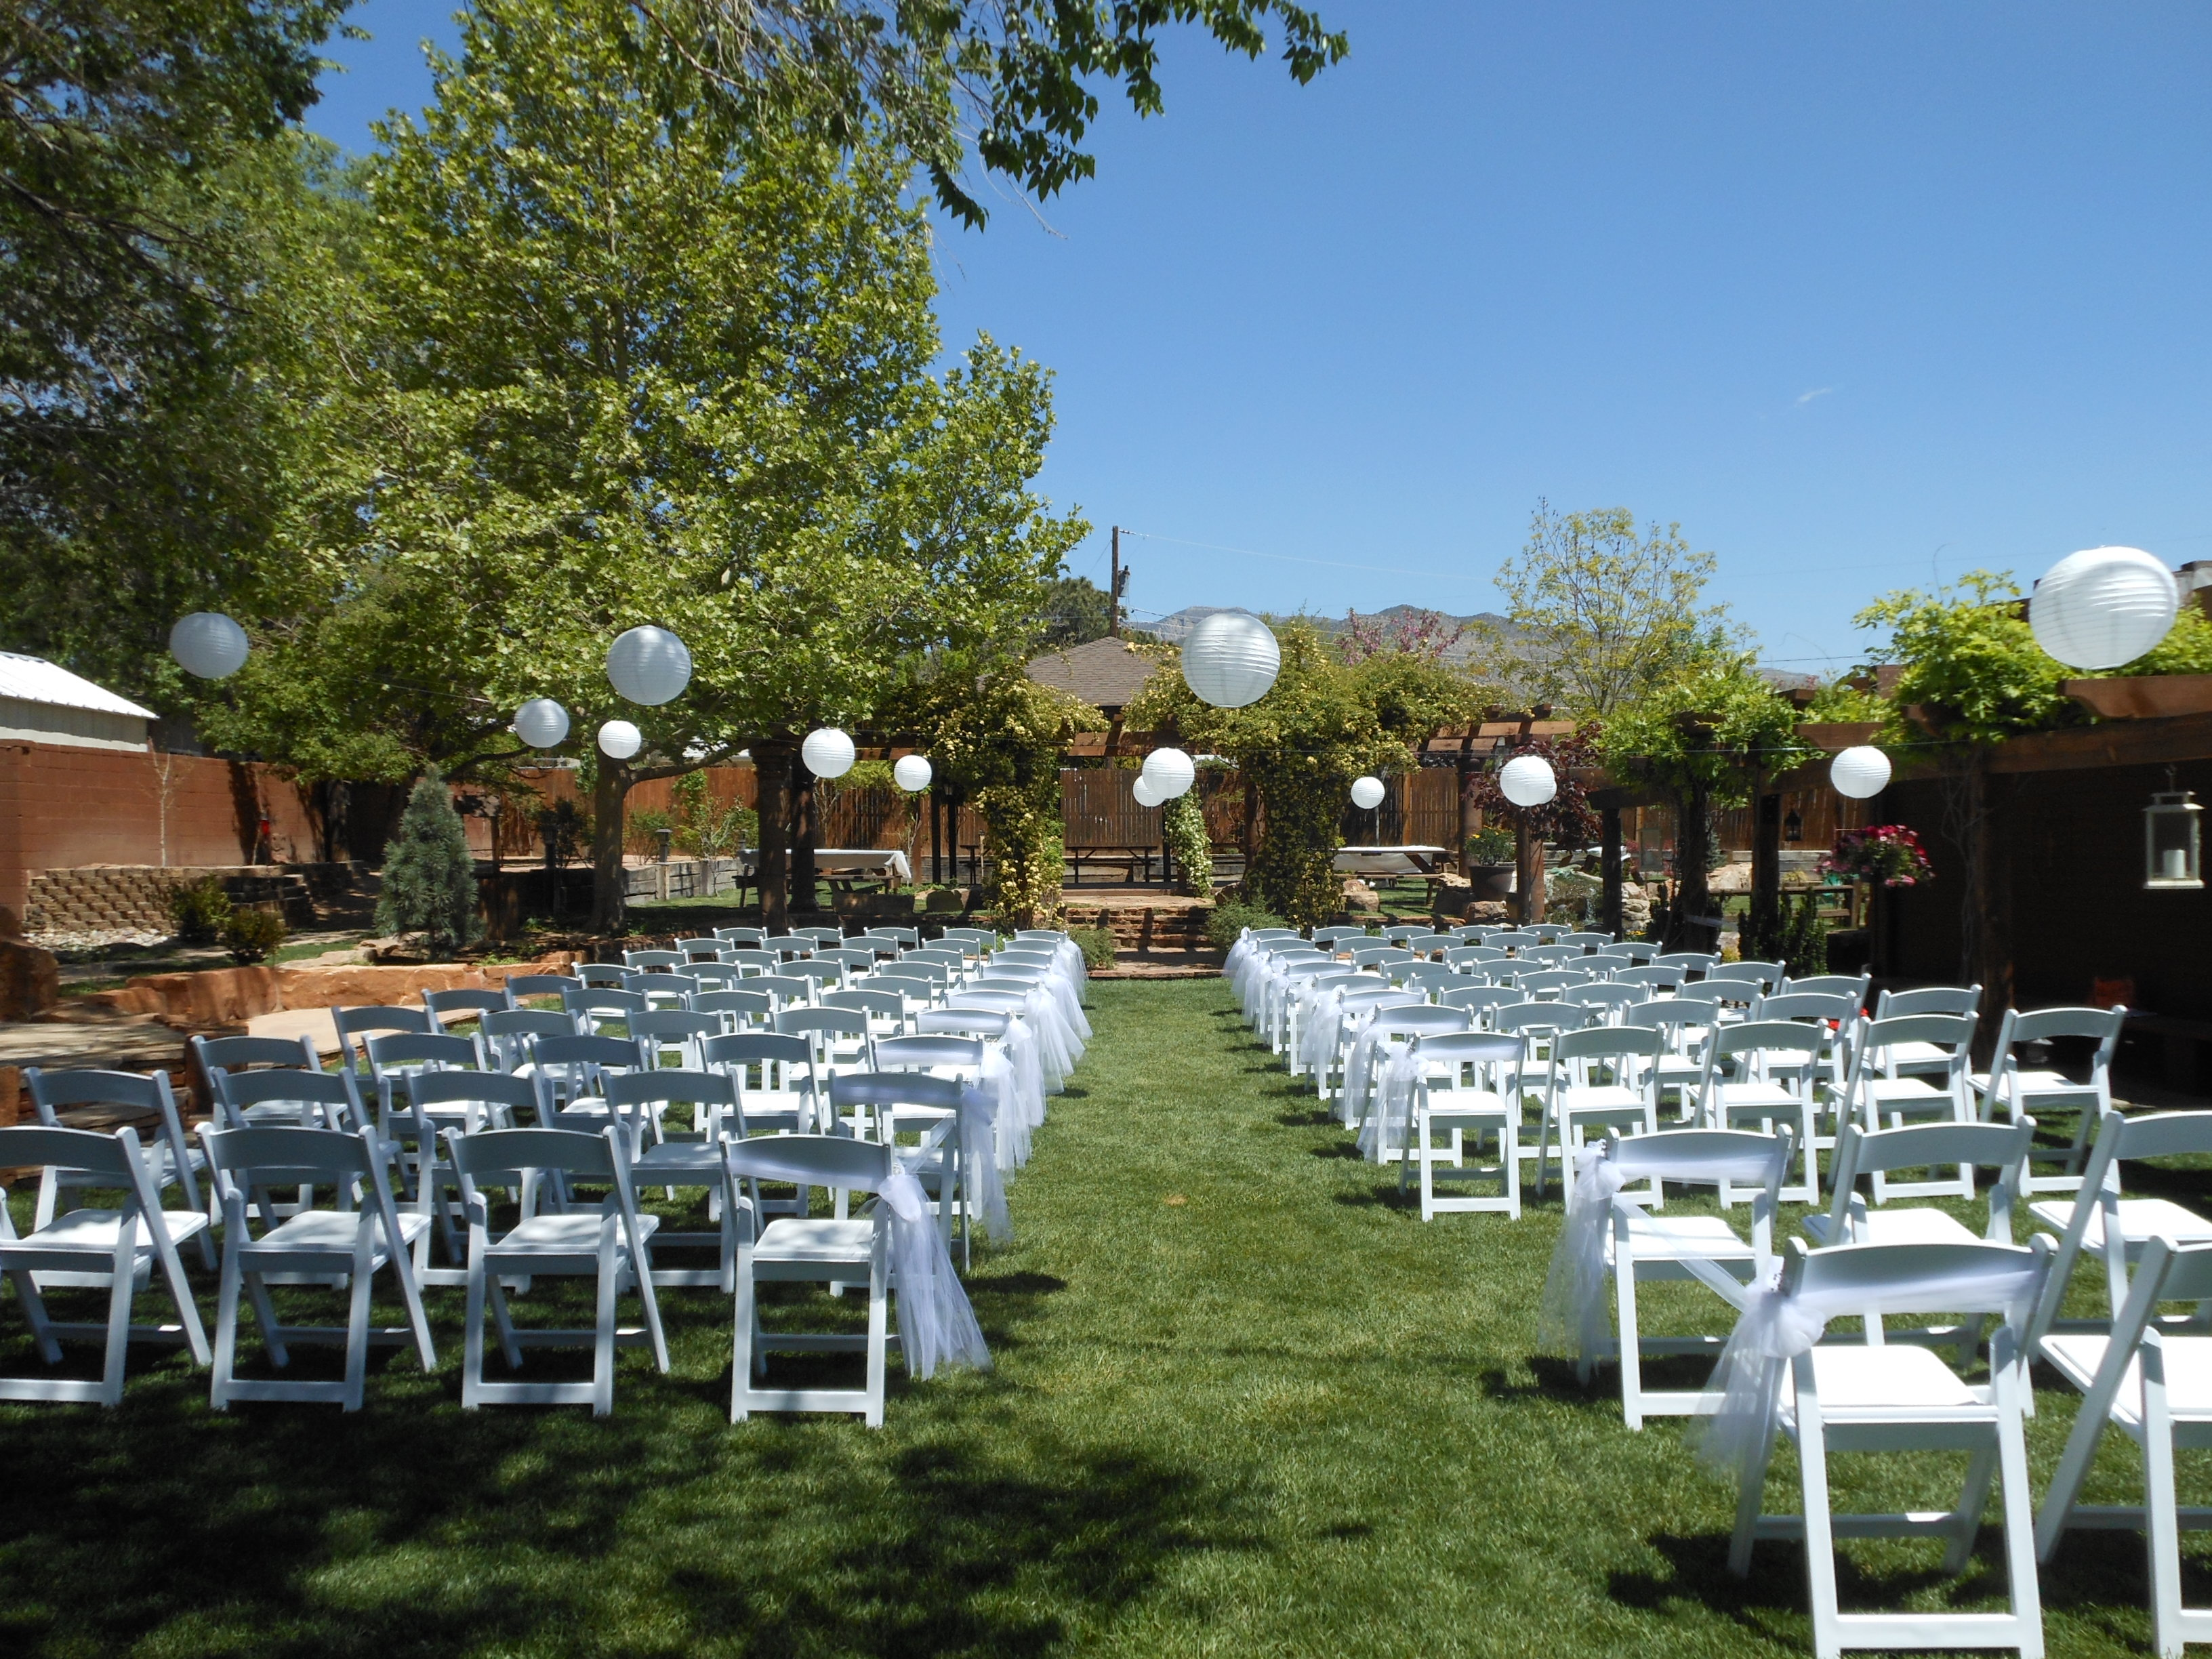 chairs set up facing East